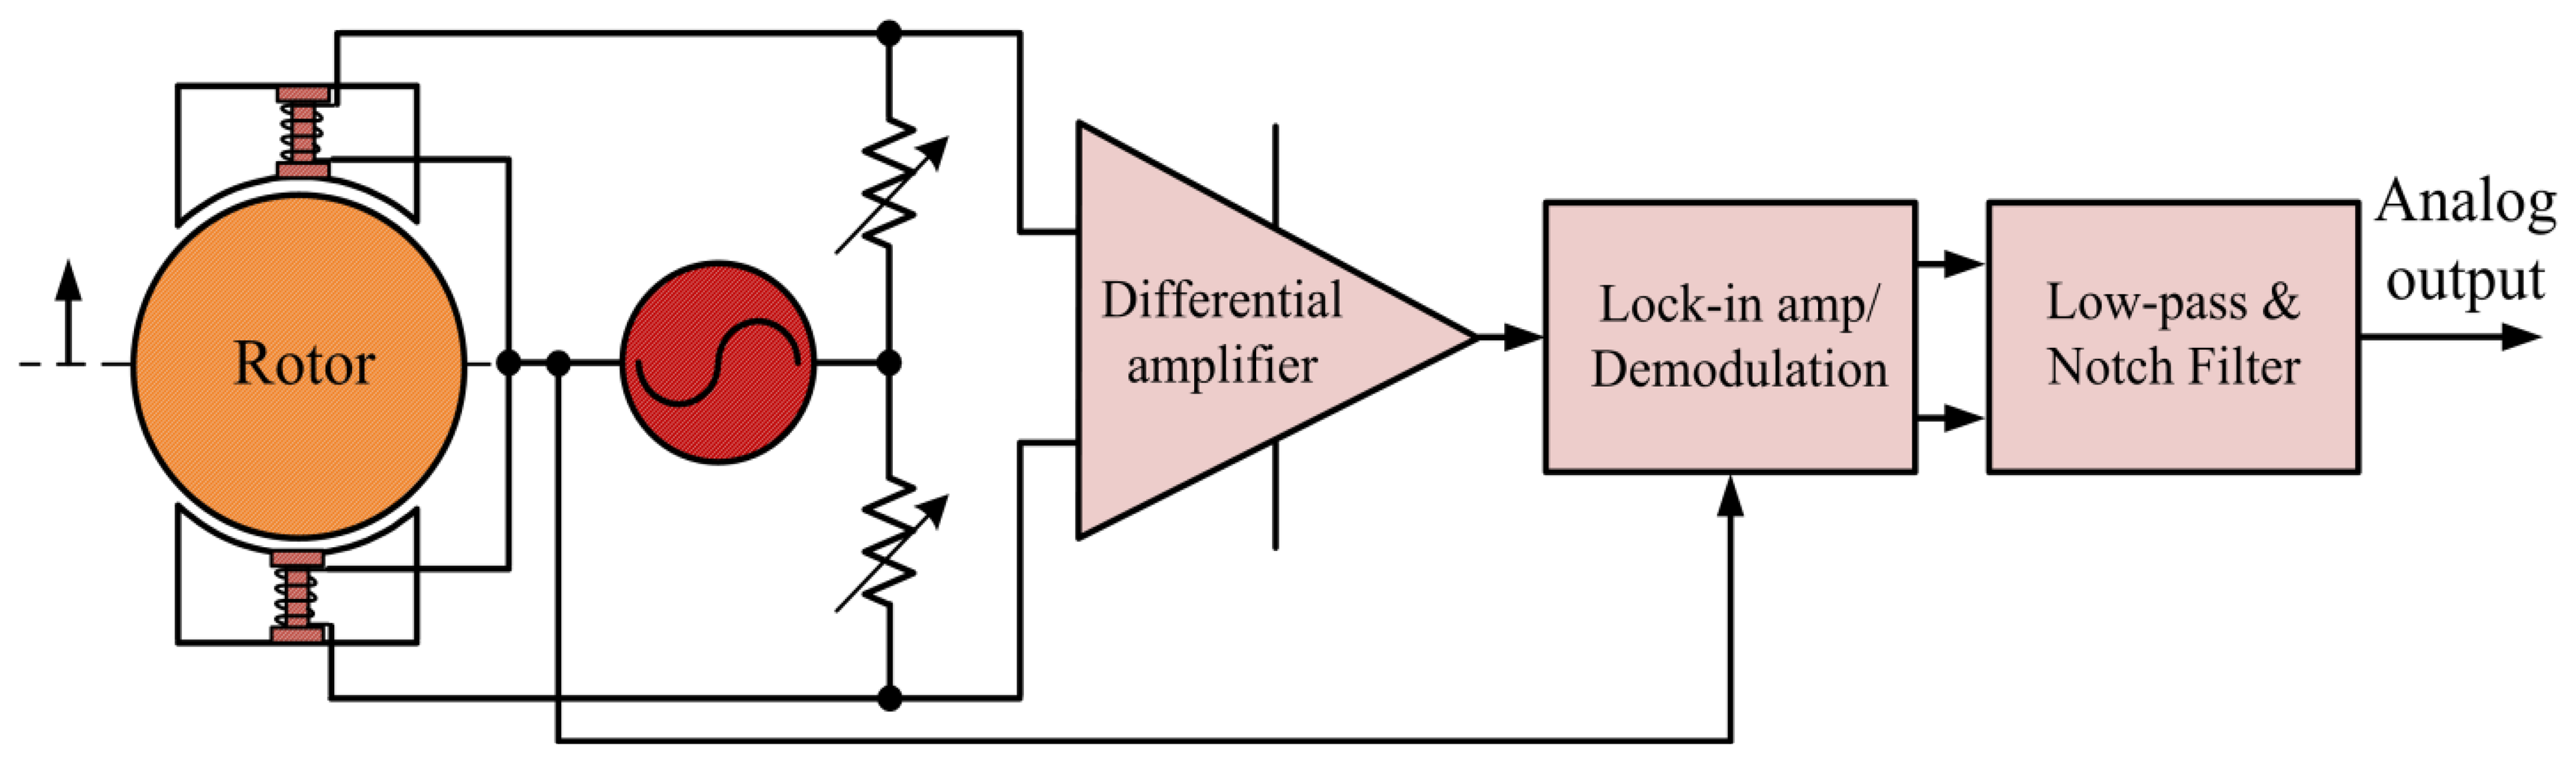 Sensors Free Full Text Inductive Displacement With A Notch Filter Uses An Operational Amplifier Circuit Diagrams 14 12640f15 1024